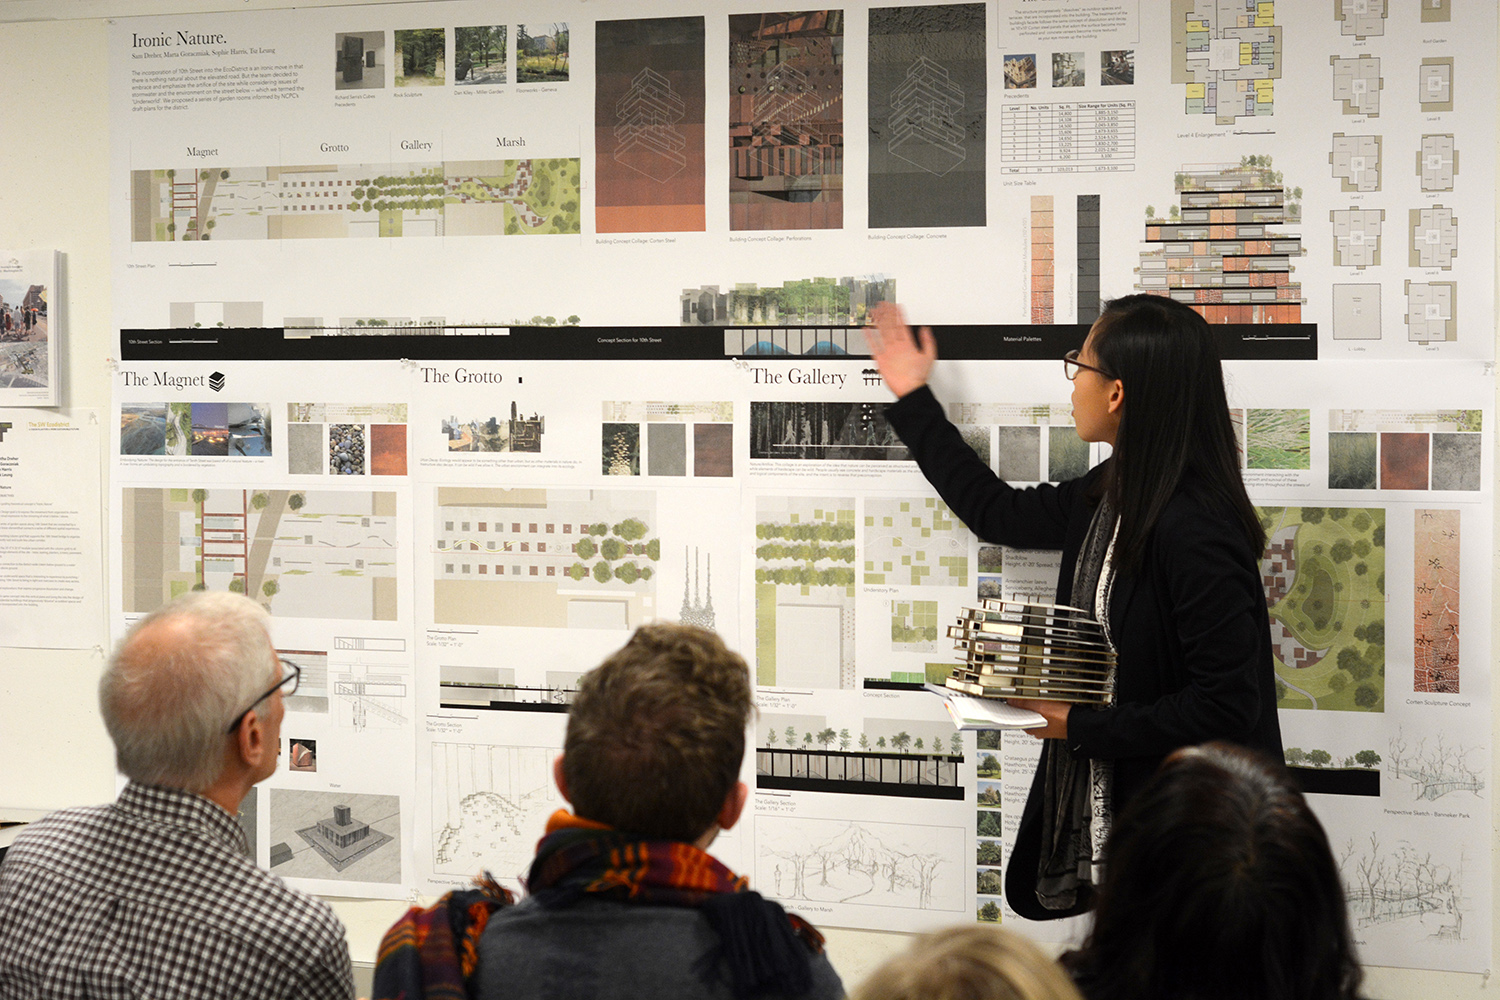 In fall 2016 taught the Senior Studio on Housing and Open Space. Our site was the  SW EcoDistrict in Washington DC.  A booklet showing the studio work can be found at this link:  http://landarch.rutgers.edu/documents/EcoDistrictStudioF2016.pdf